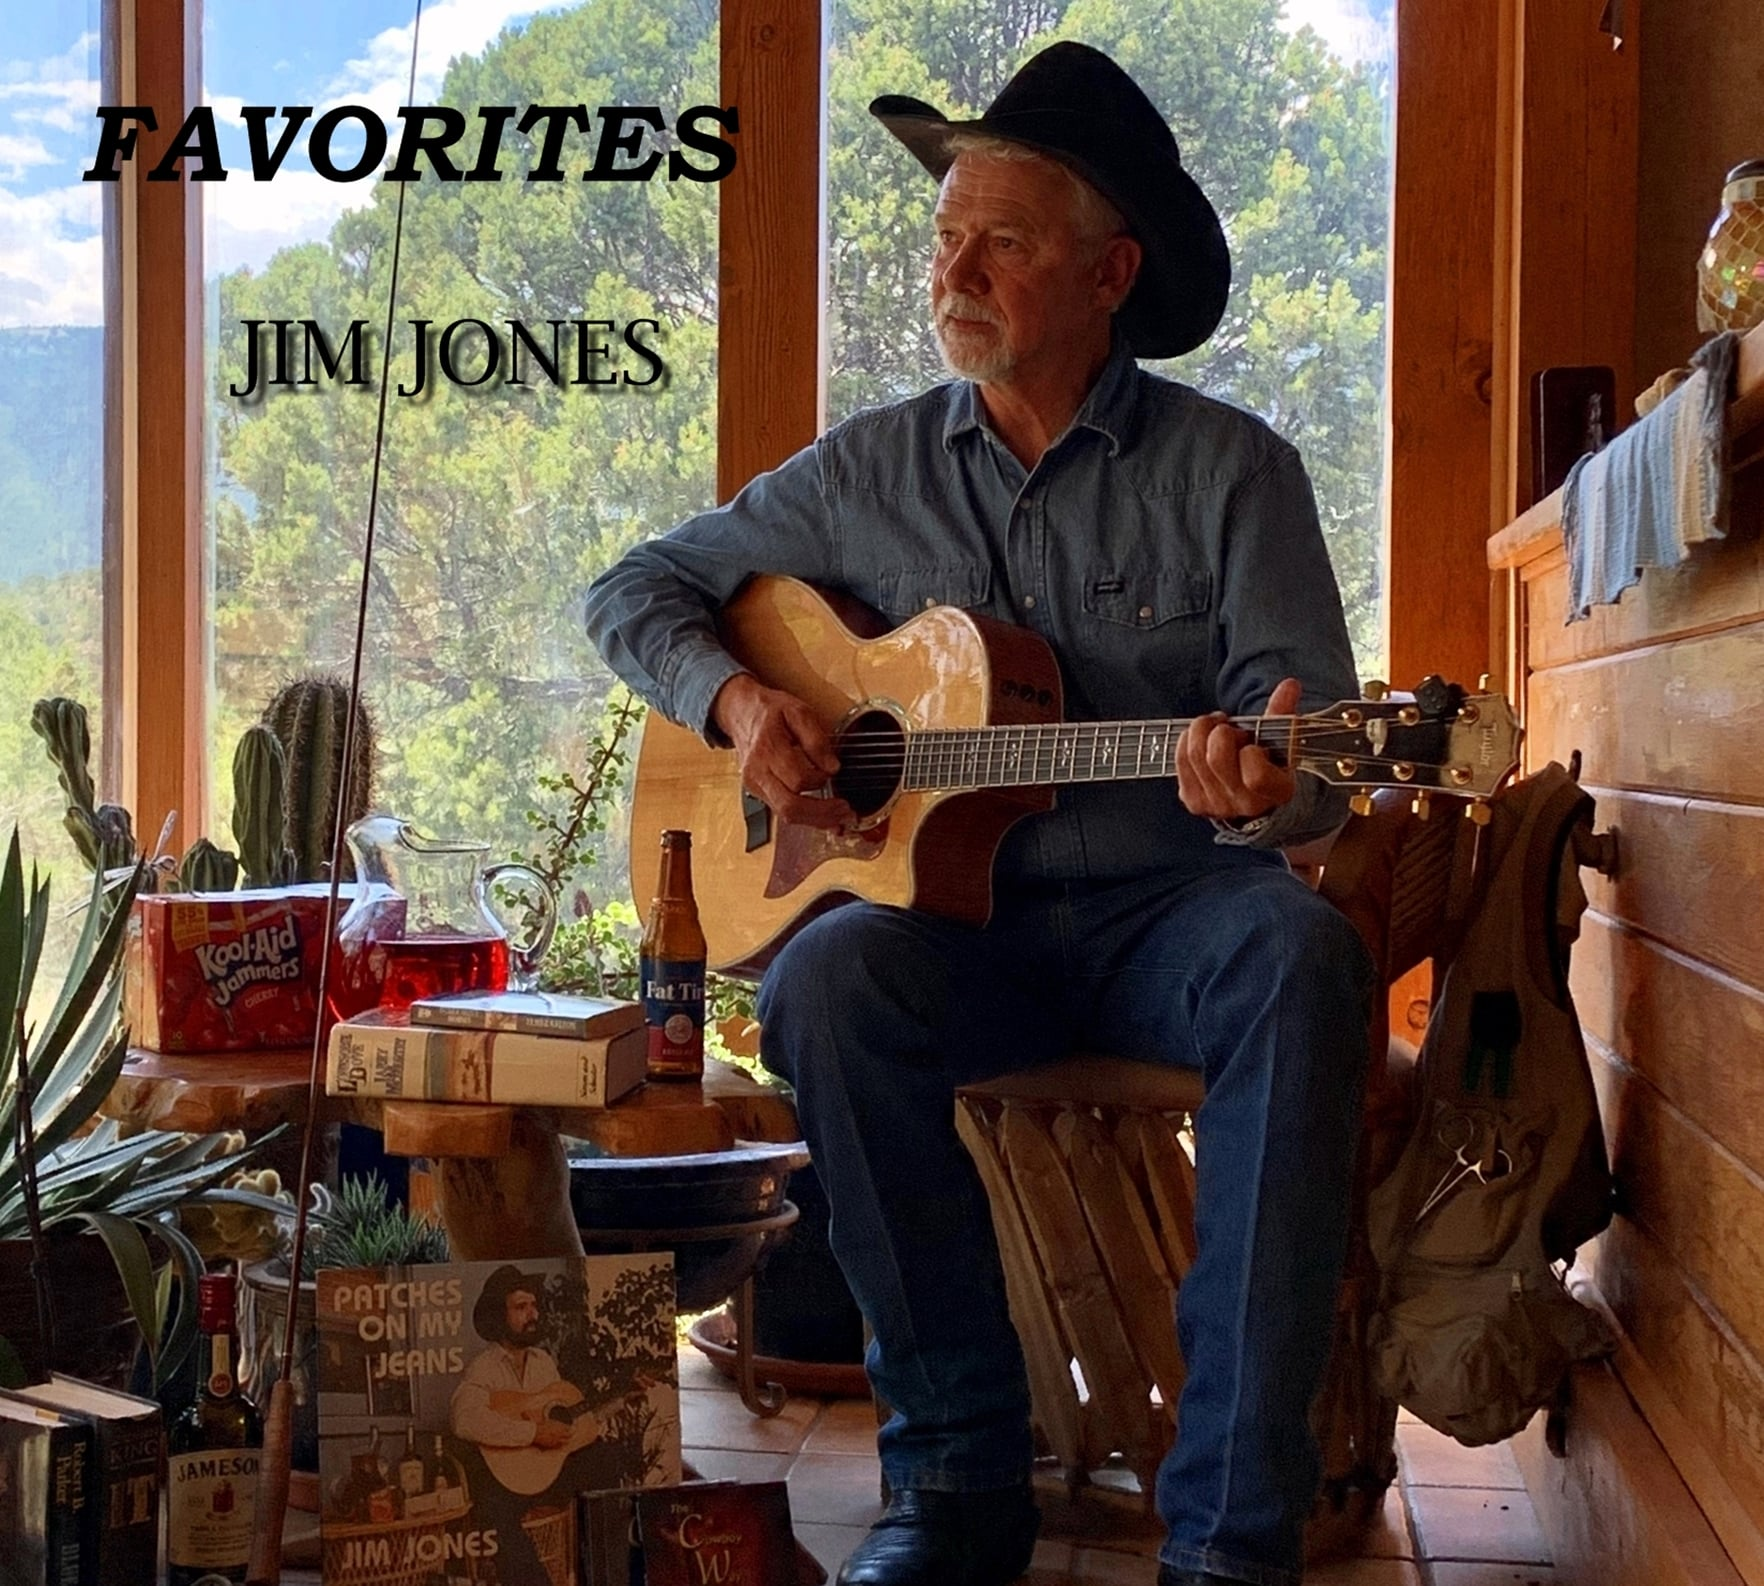 Race with the Wind by Award Winning Musician Jim Jones